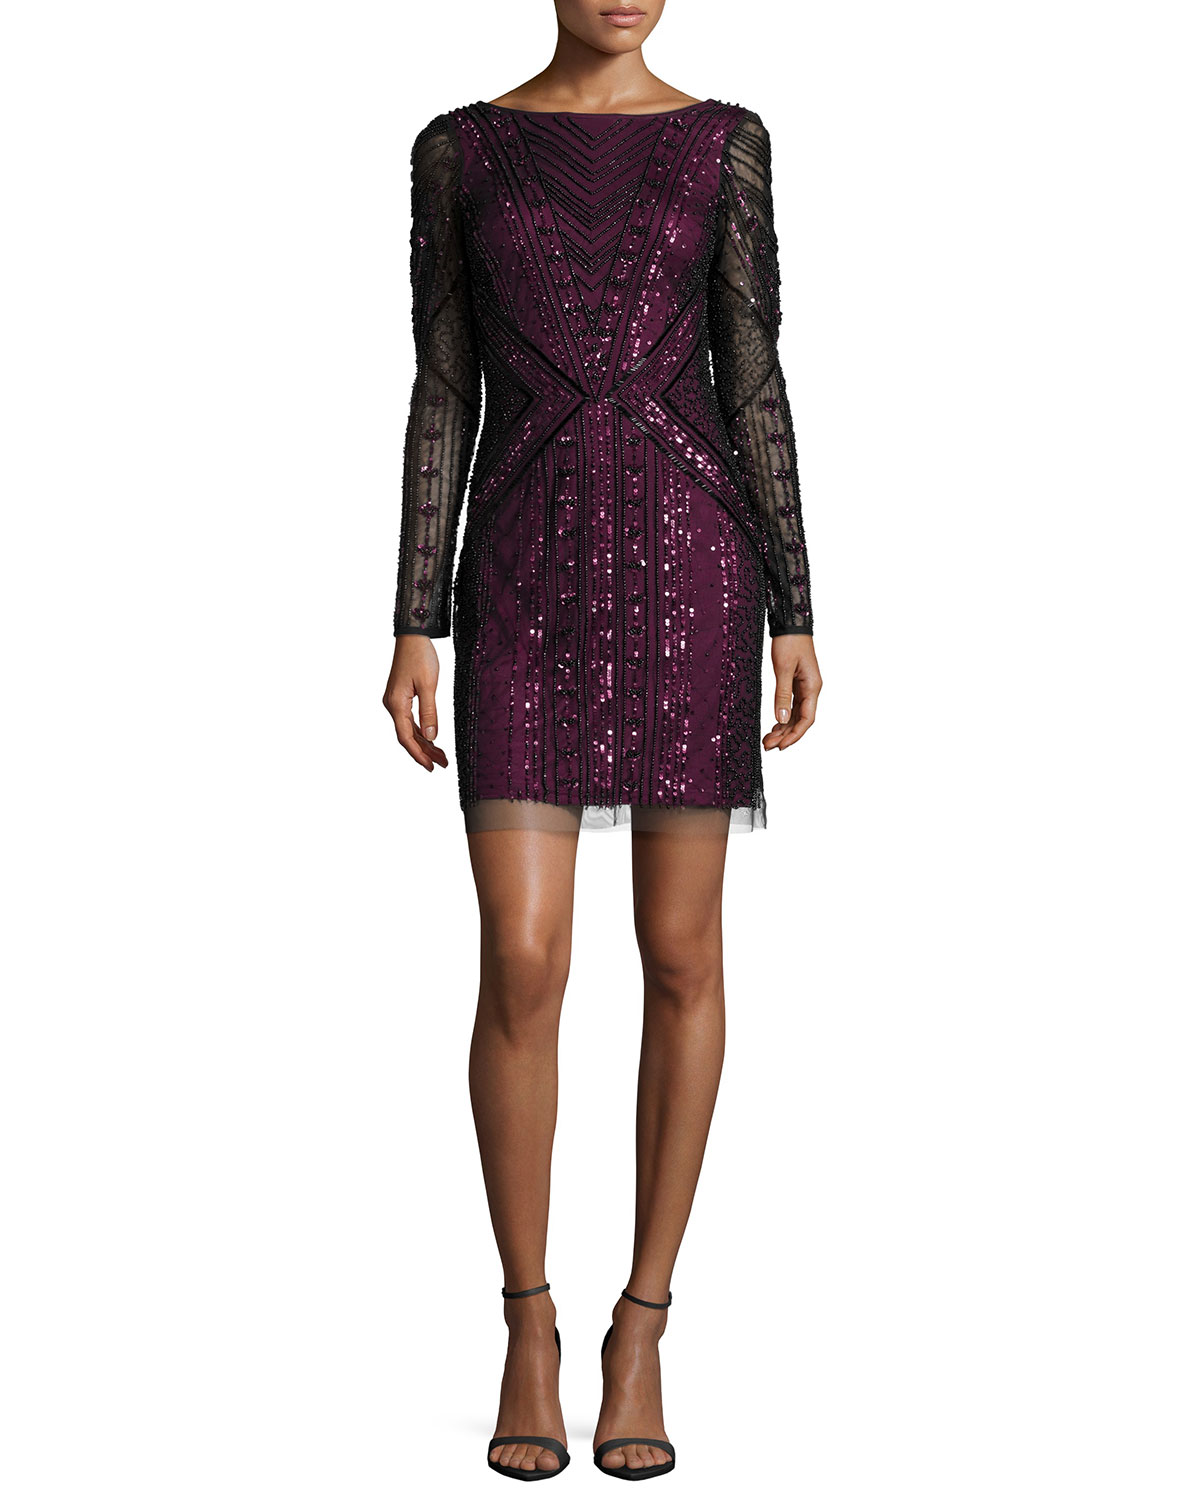 4a0b2dc3338 Aidan Mattox Long-Sleeve Sequined Beaded Sheath Cocktail Dress ...